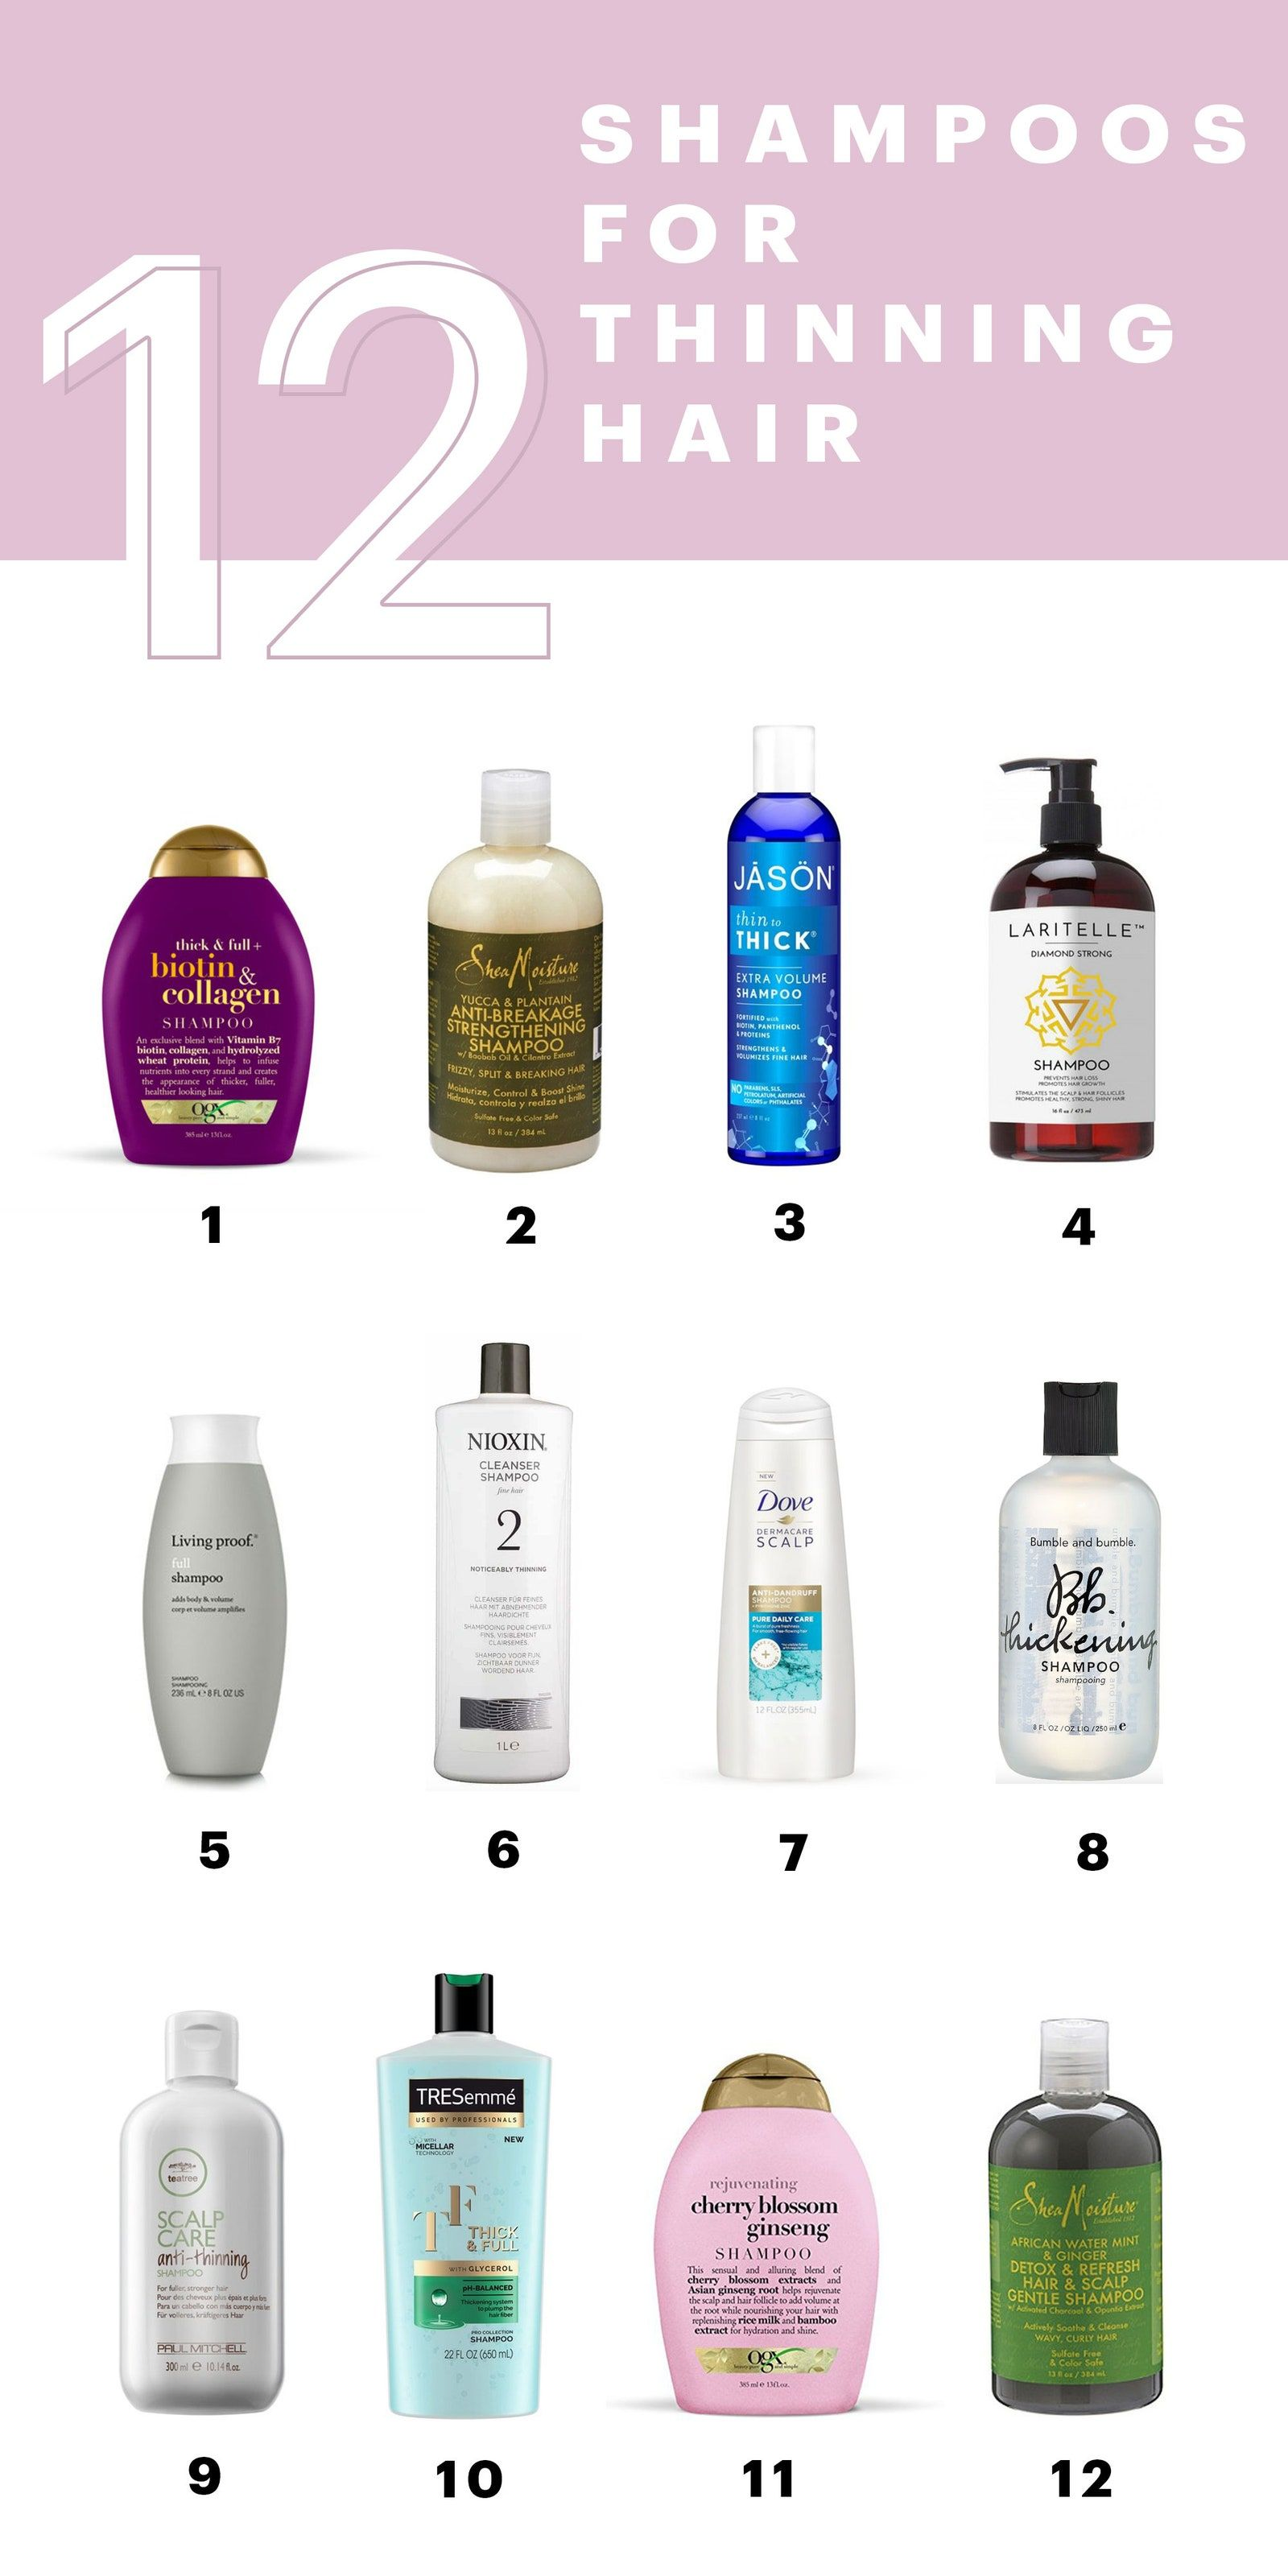 These Are The Best Shampoos For Thinning Hair According To Dermatologists Shampoo For Thinning Hair Good Shampoo And Conditioner Best Shampoos